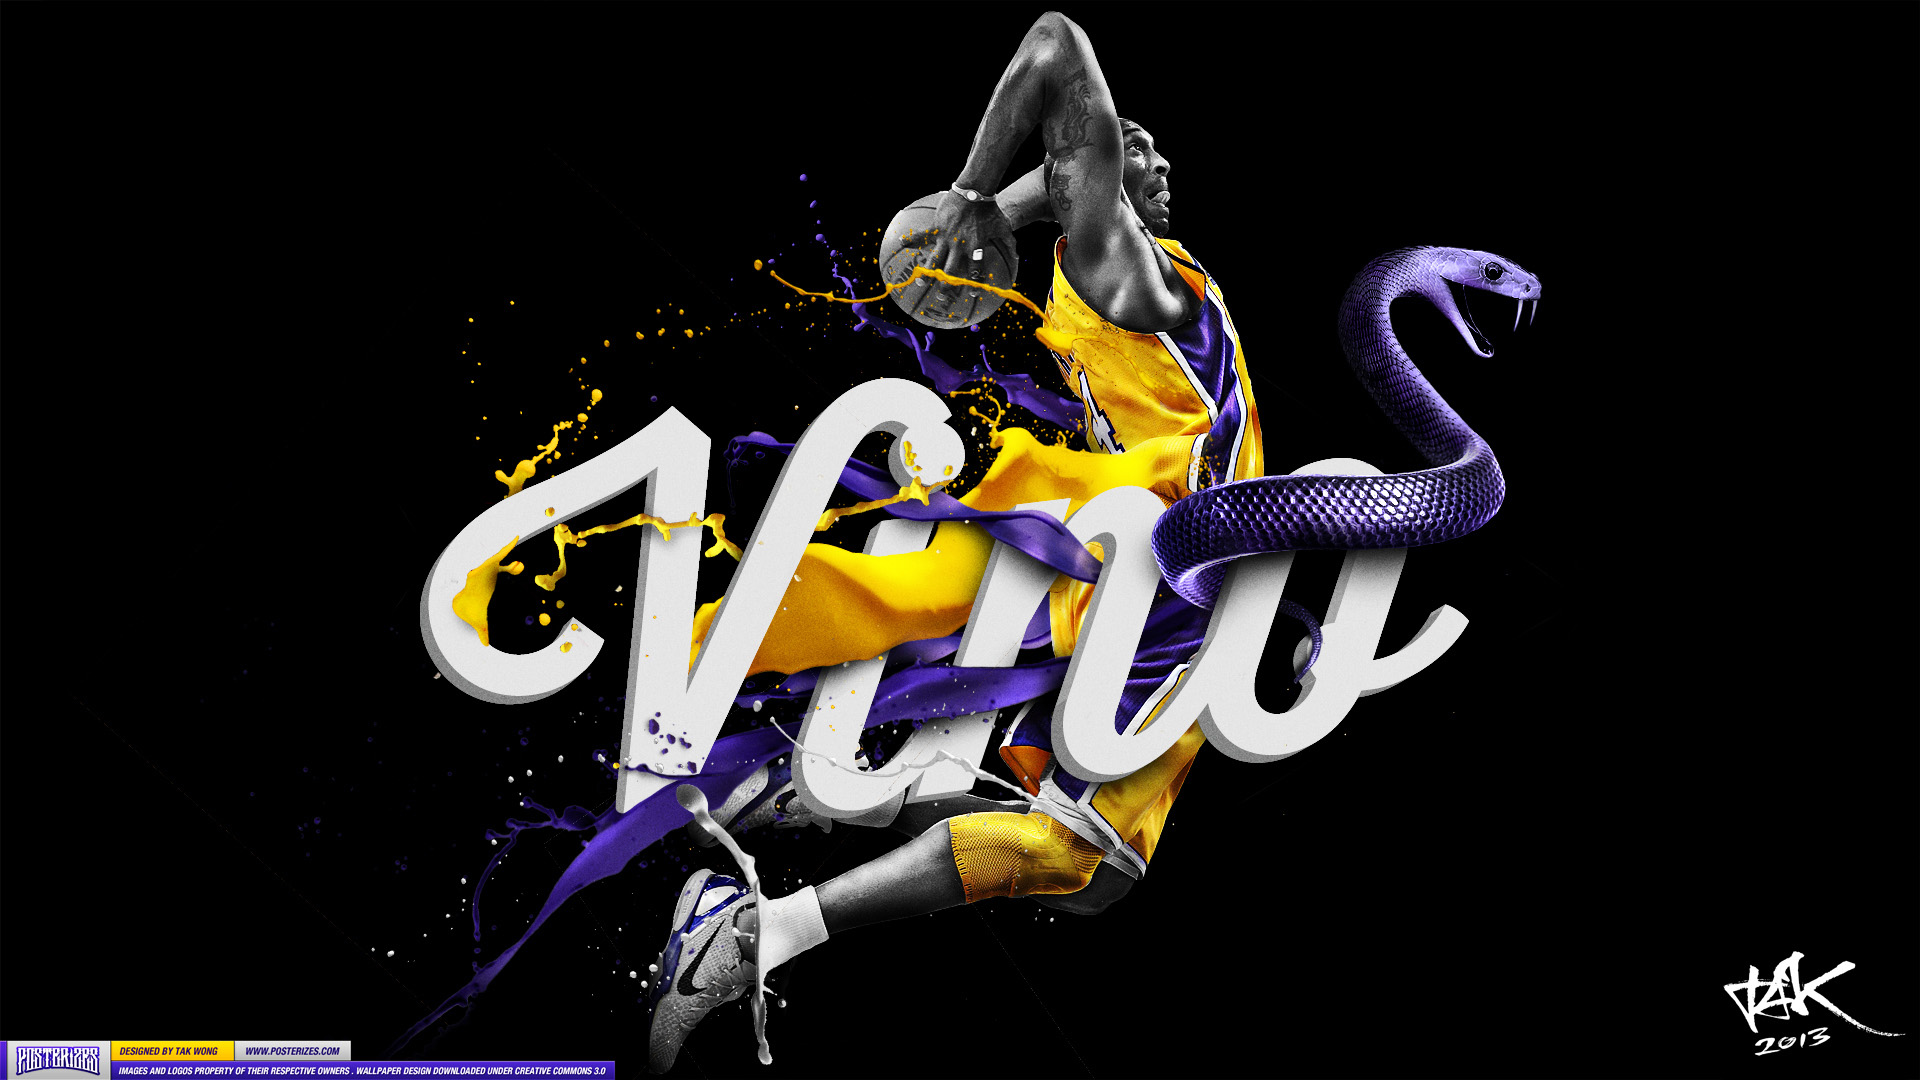 Kobe Dunk Wallpaper Posted By Ethan Anderson